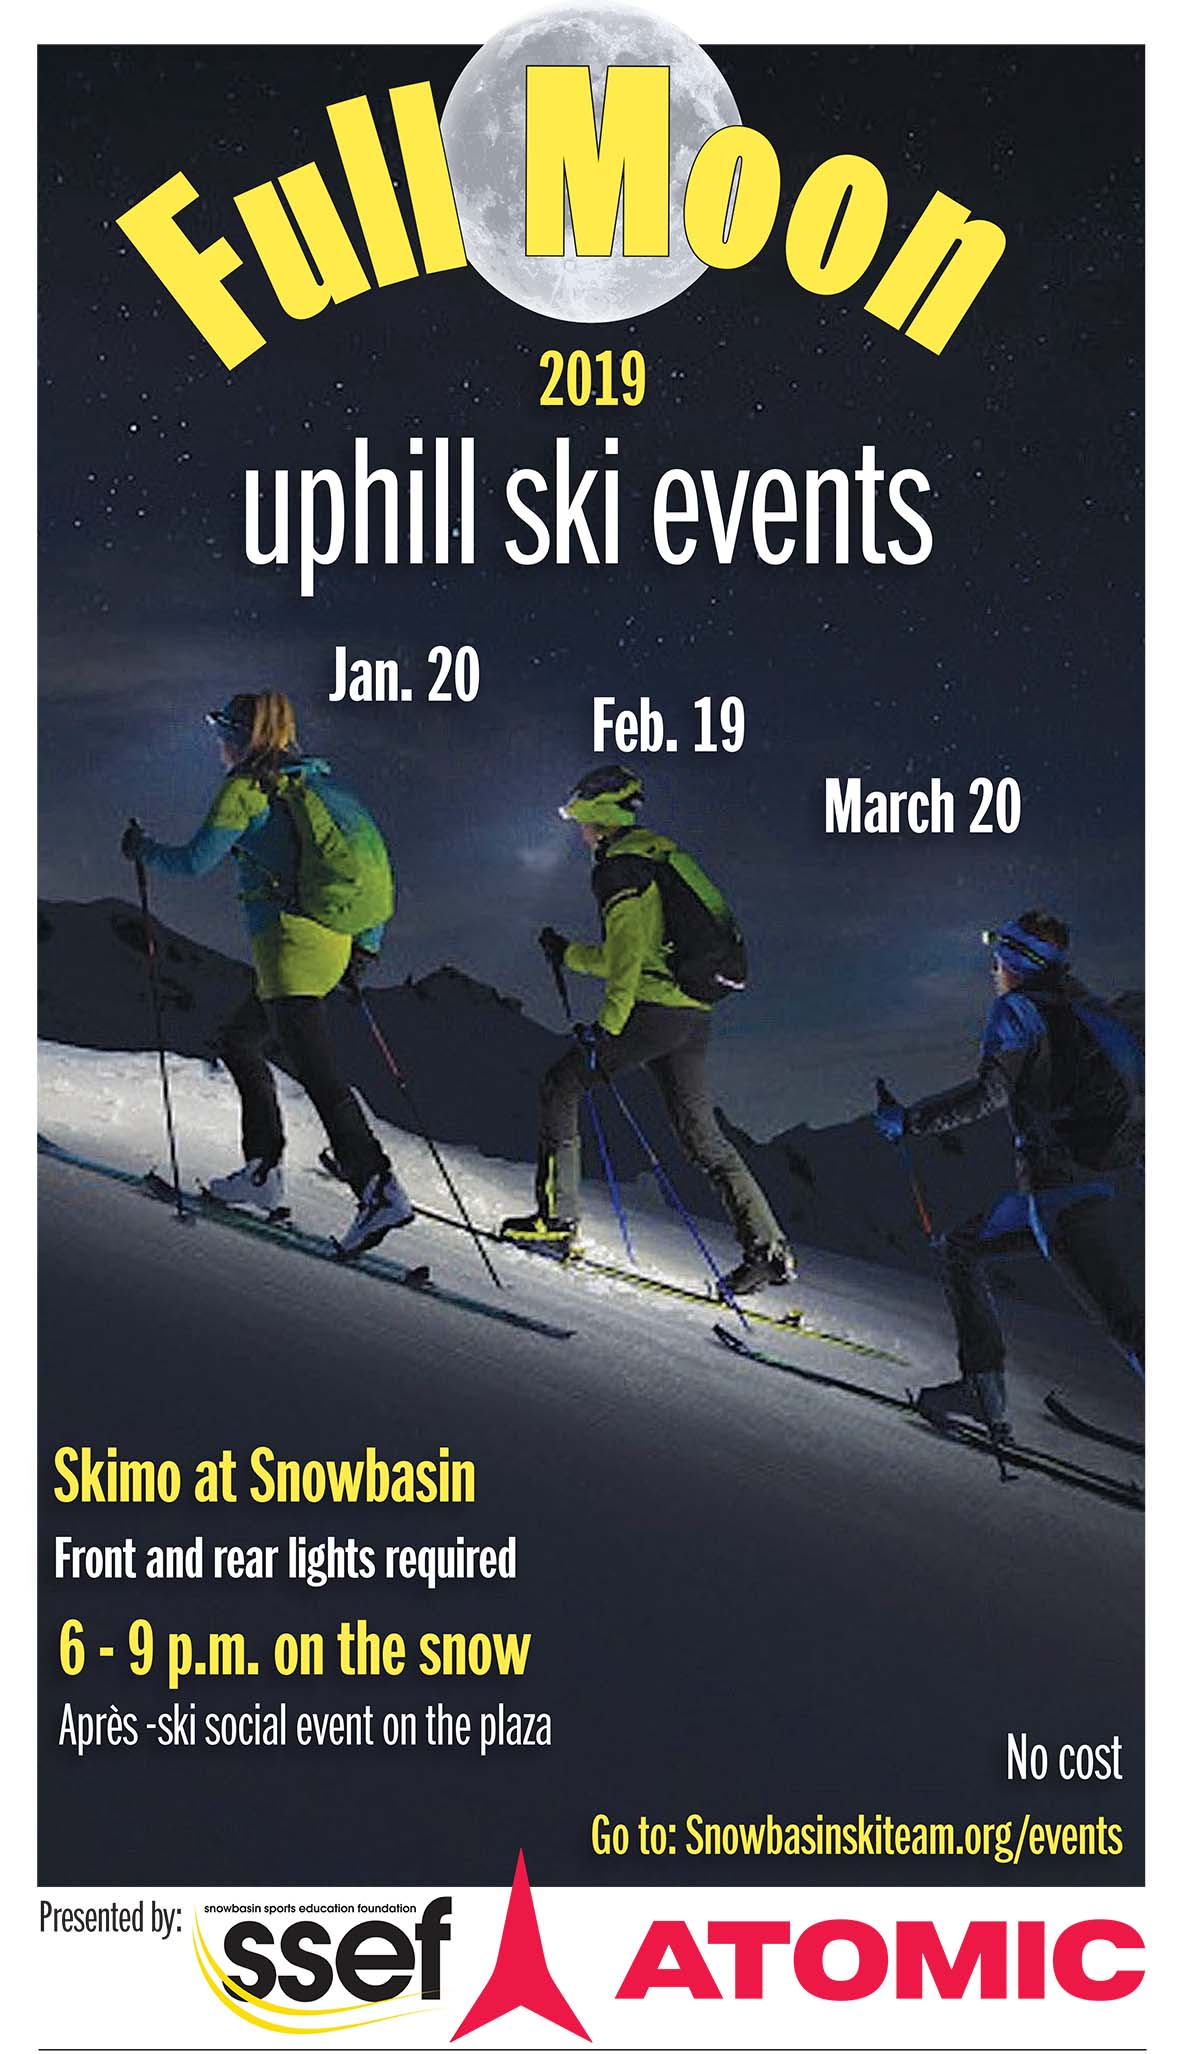 Full moon uphill ski event